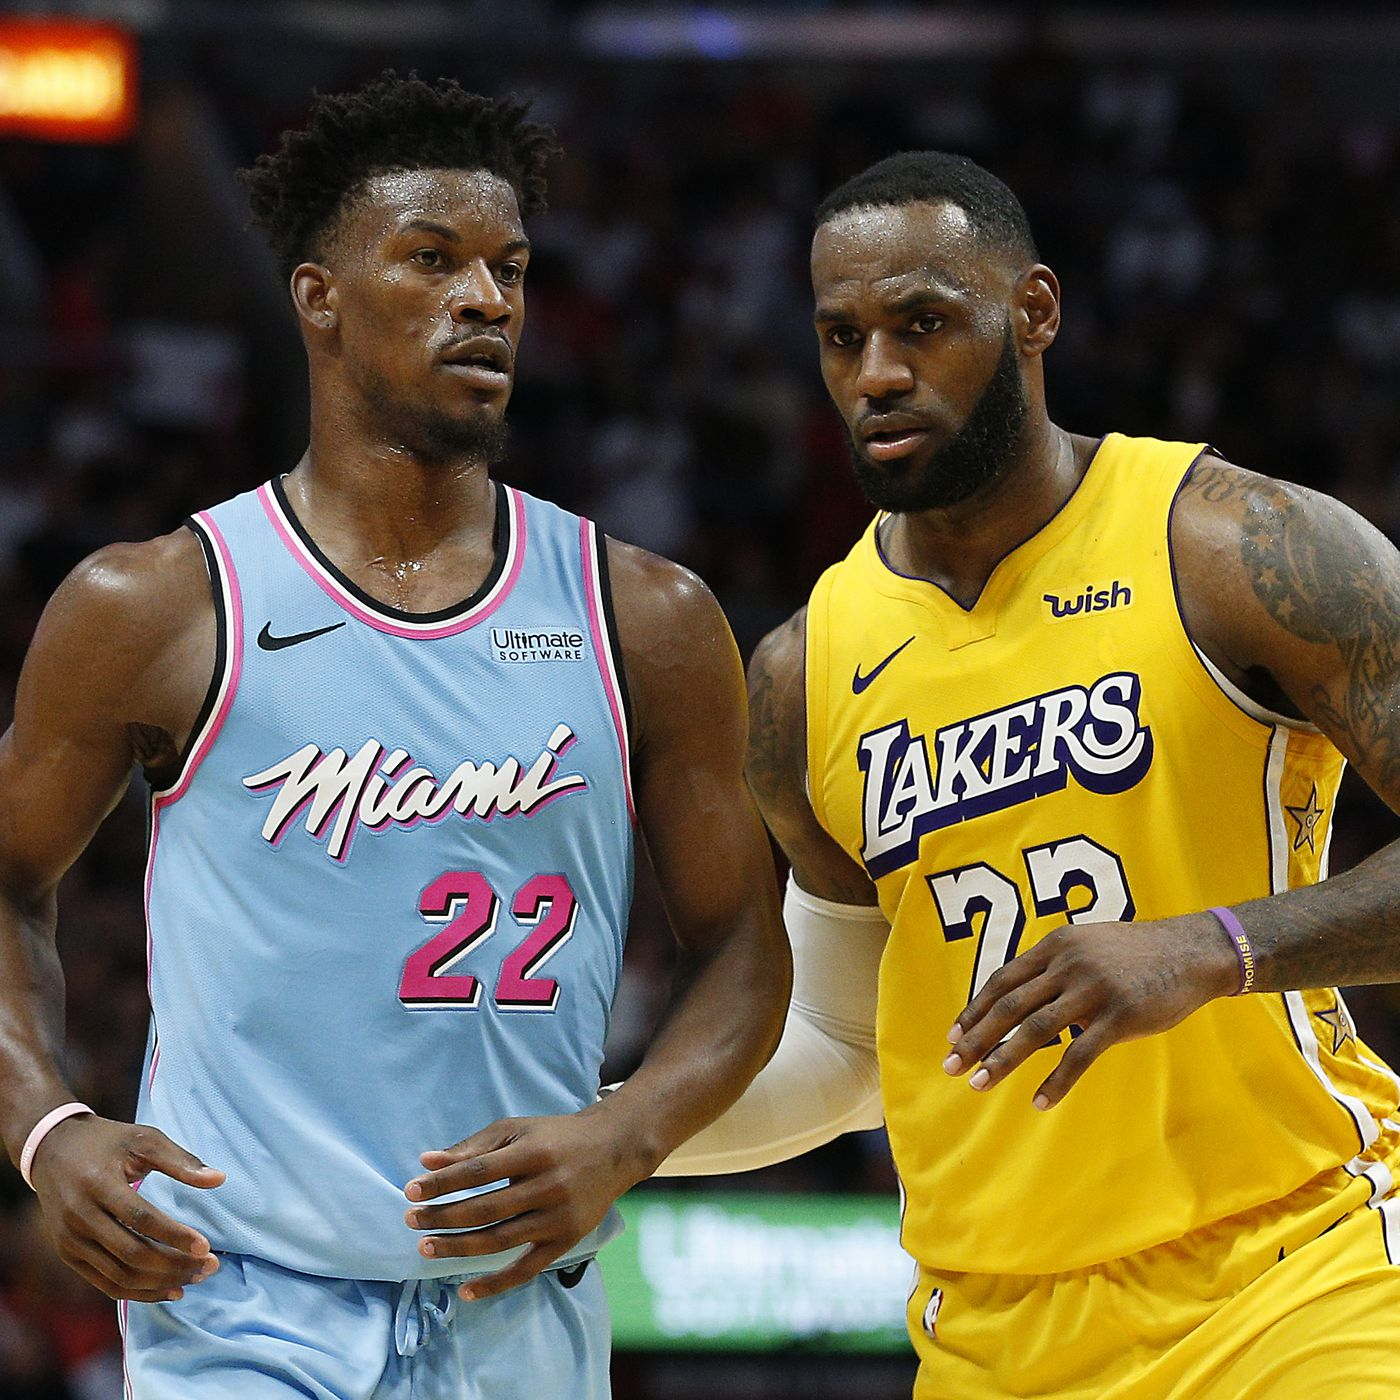 Nba finals odds betting lines overbetting wednesday images